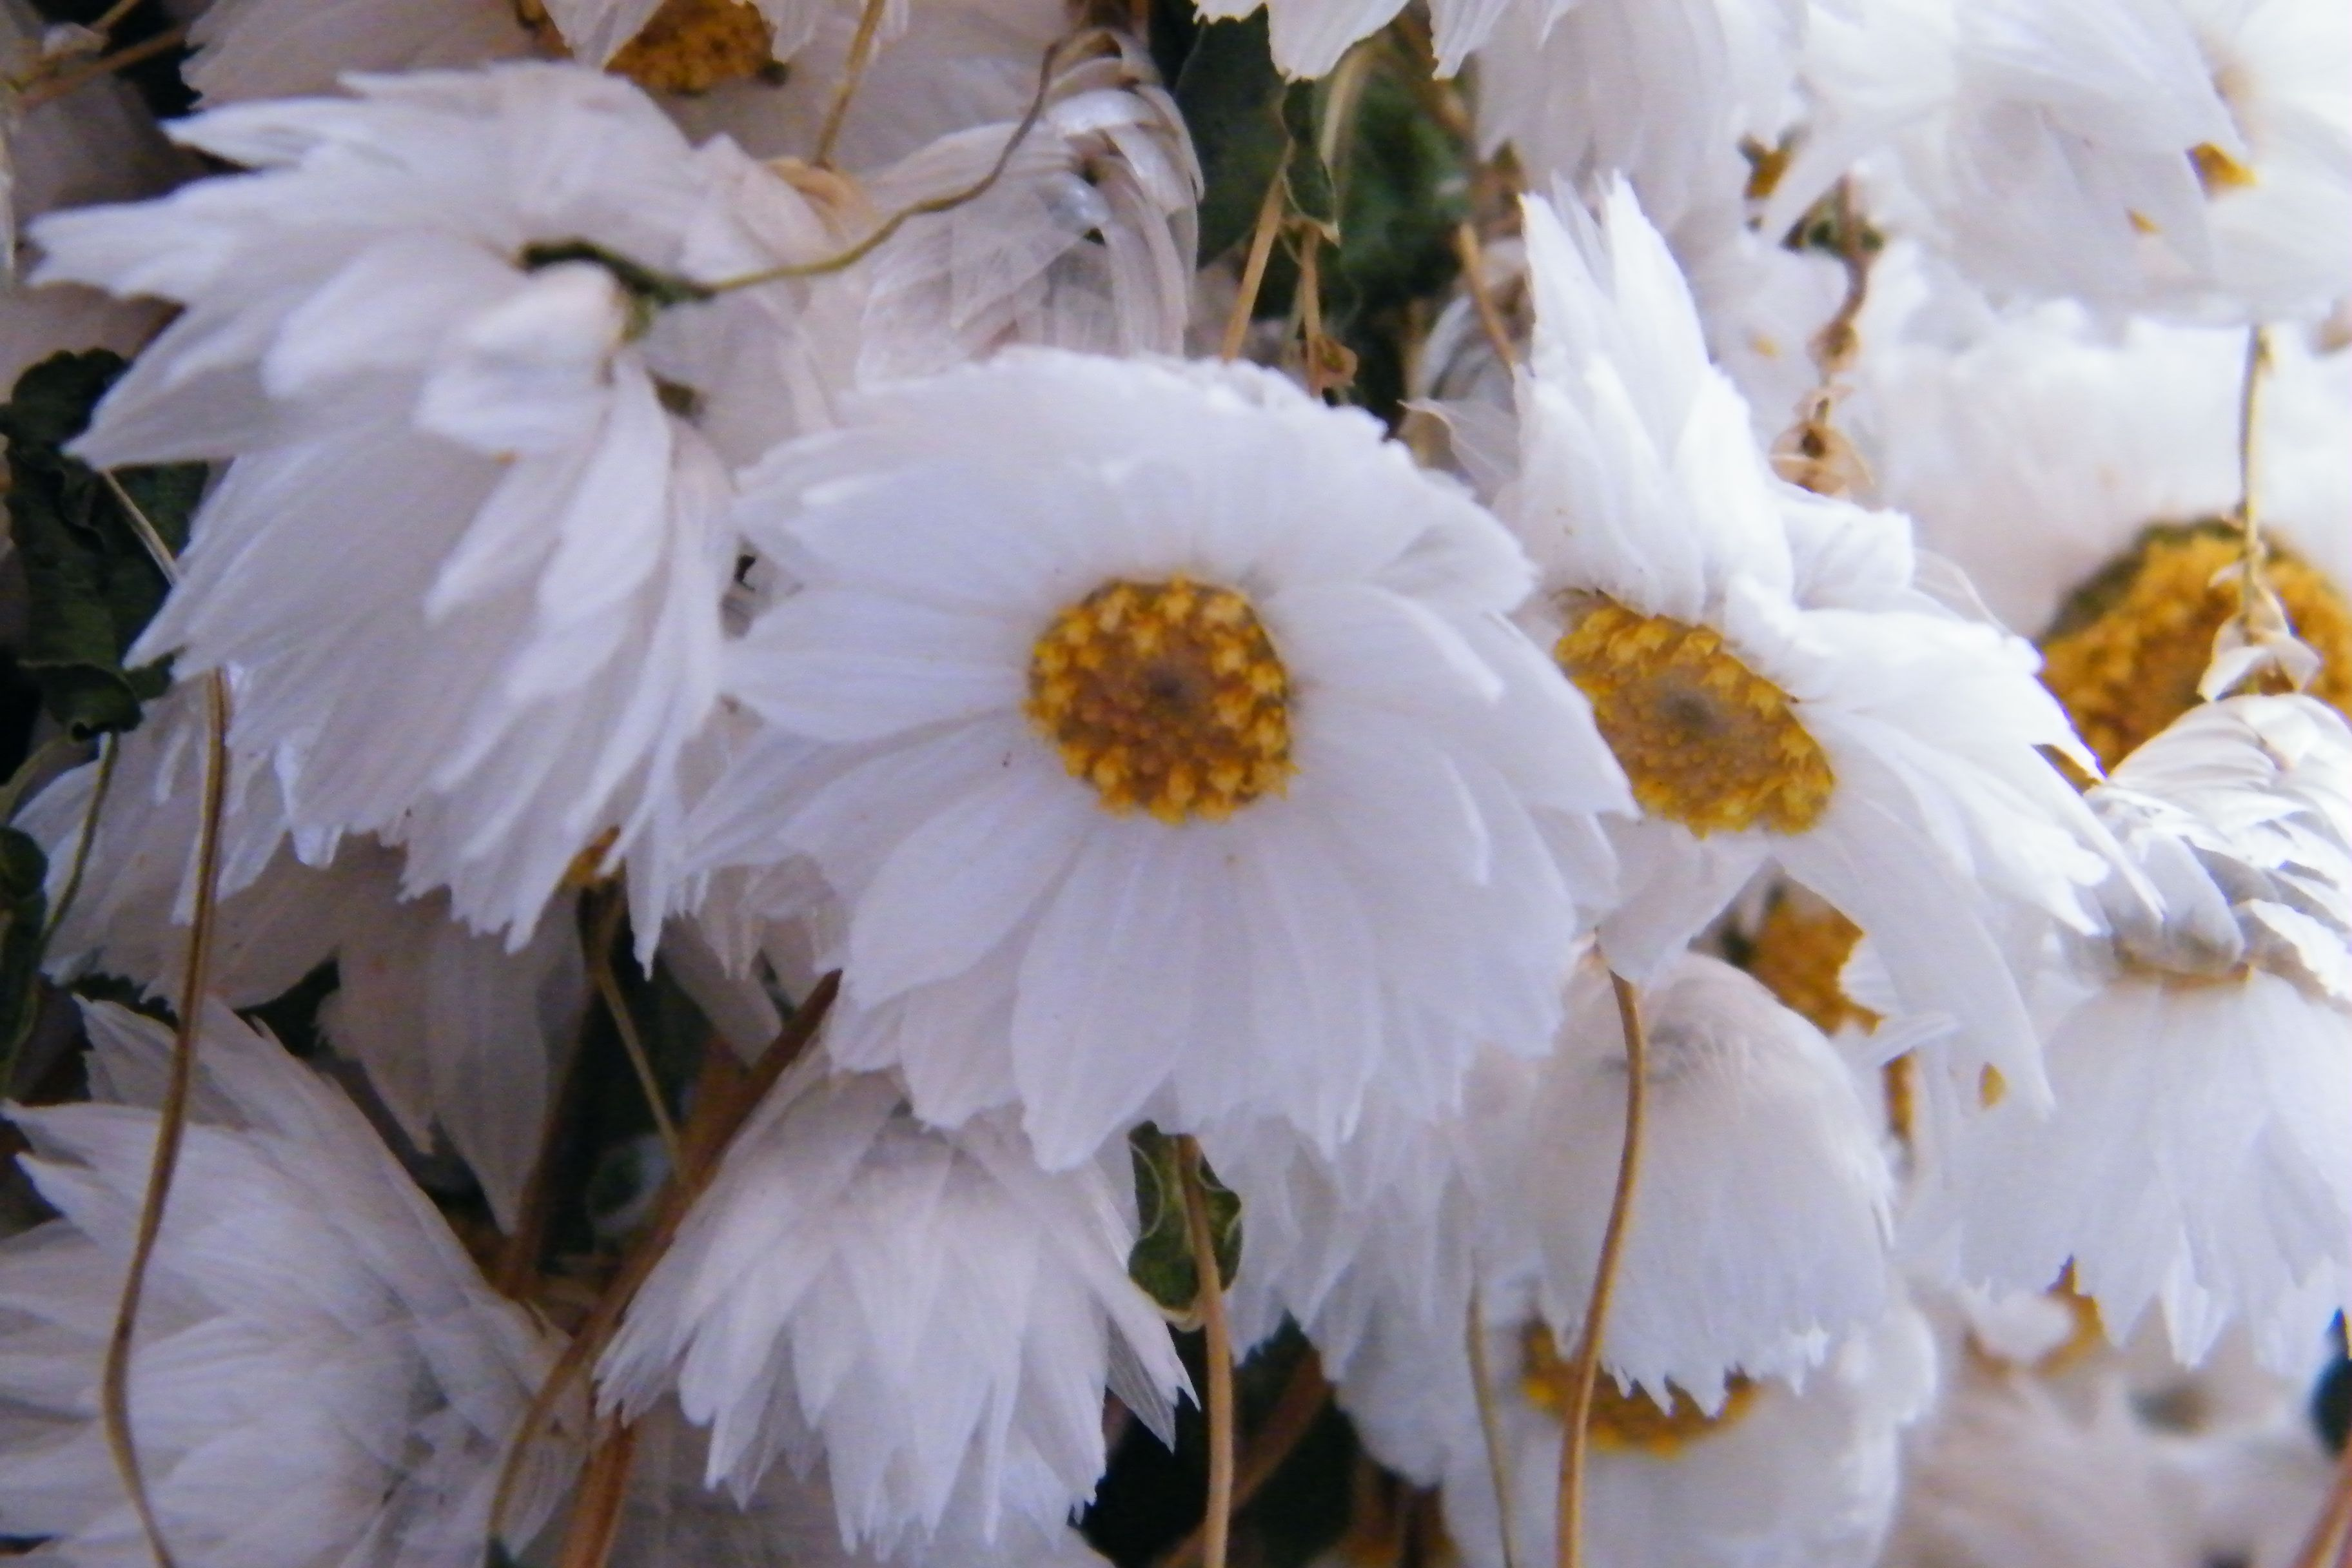 Dried White Rhodanthus Flowers Are Pretty Daisy Like Flowers Also